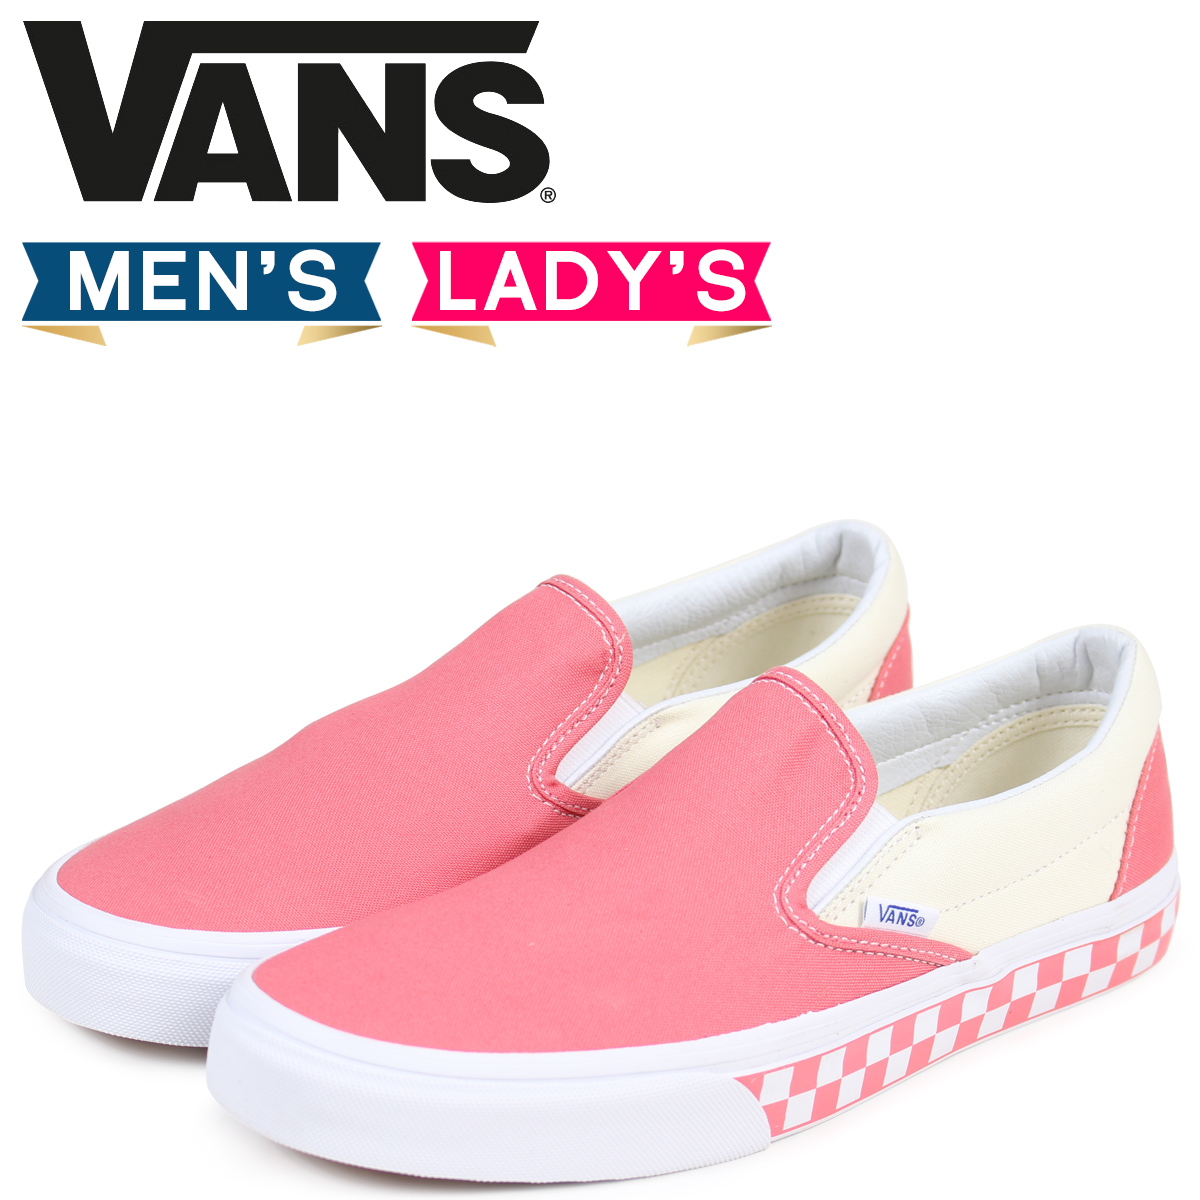 04b940df92007e Vans slip-ons sneakers men gap Dis VANS station wagons CLASSIC SLIP-ON  VN0A38F7QCI pink